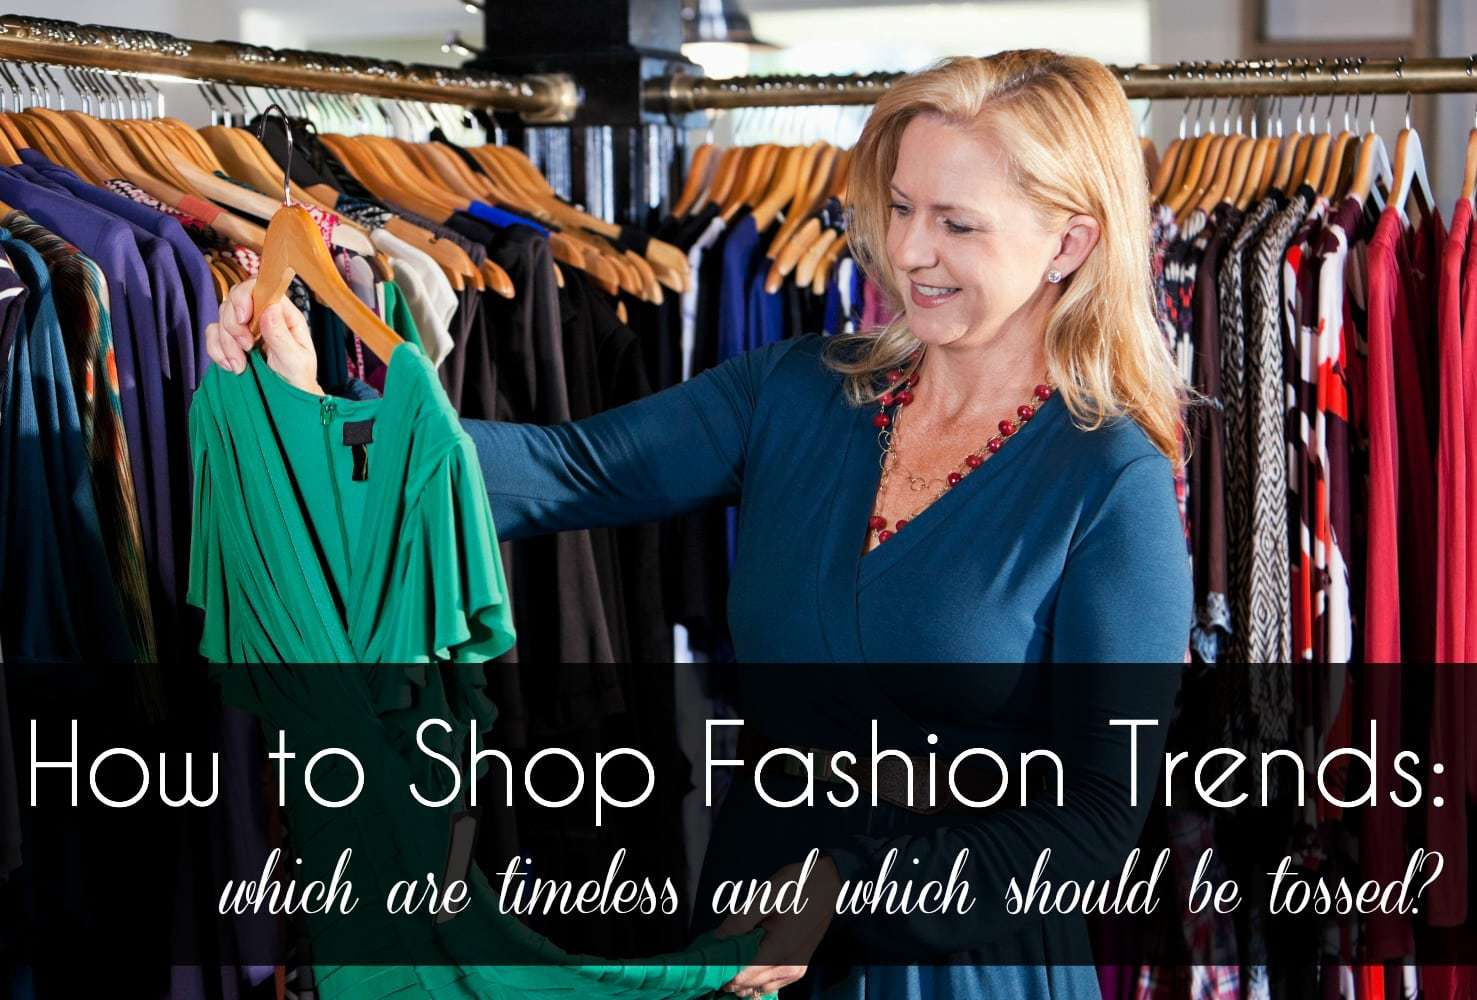 Image of a woman in a clothing store, looking at a green dress while smiling. Text overlay that says how to shop for fashion trends, which are timeless and which should be tossed.